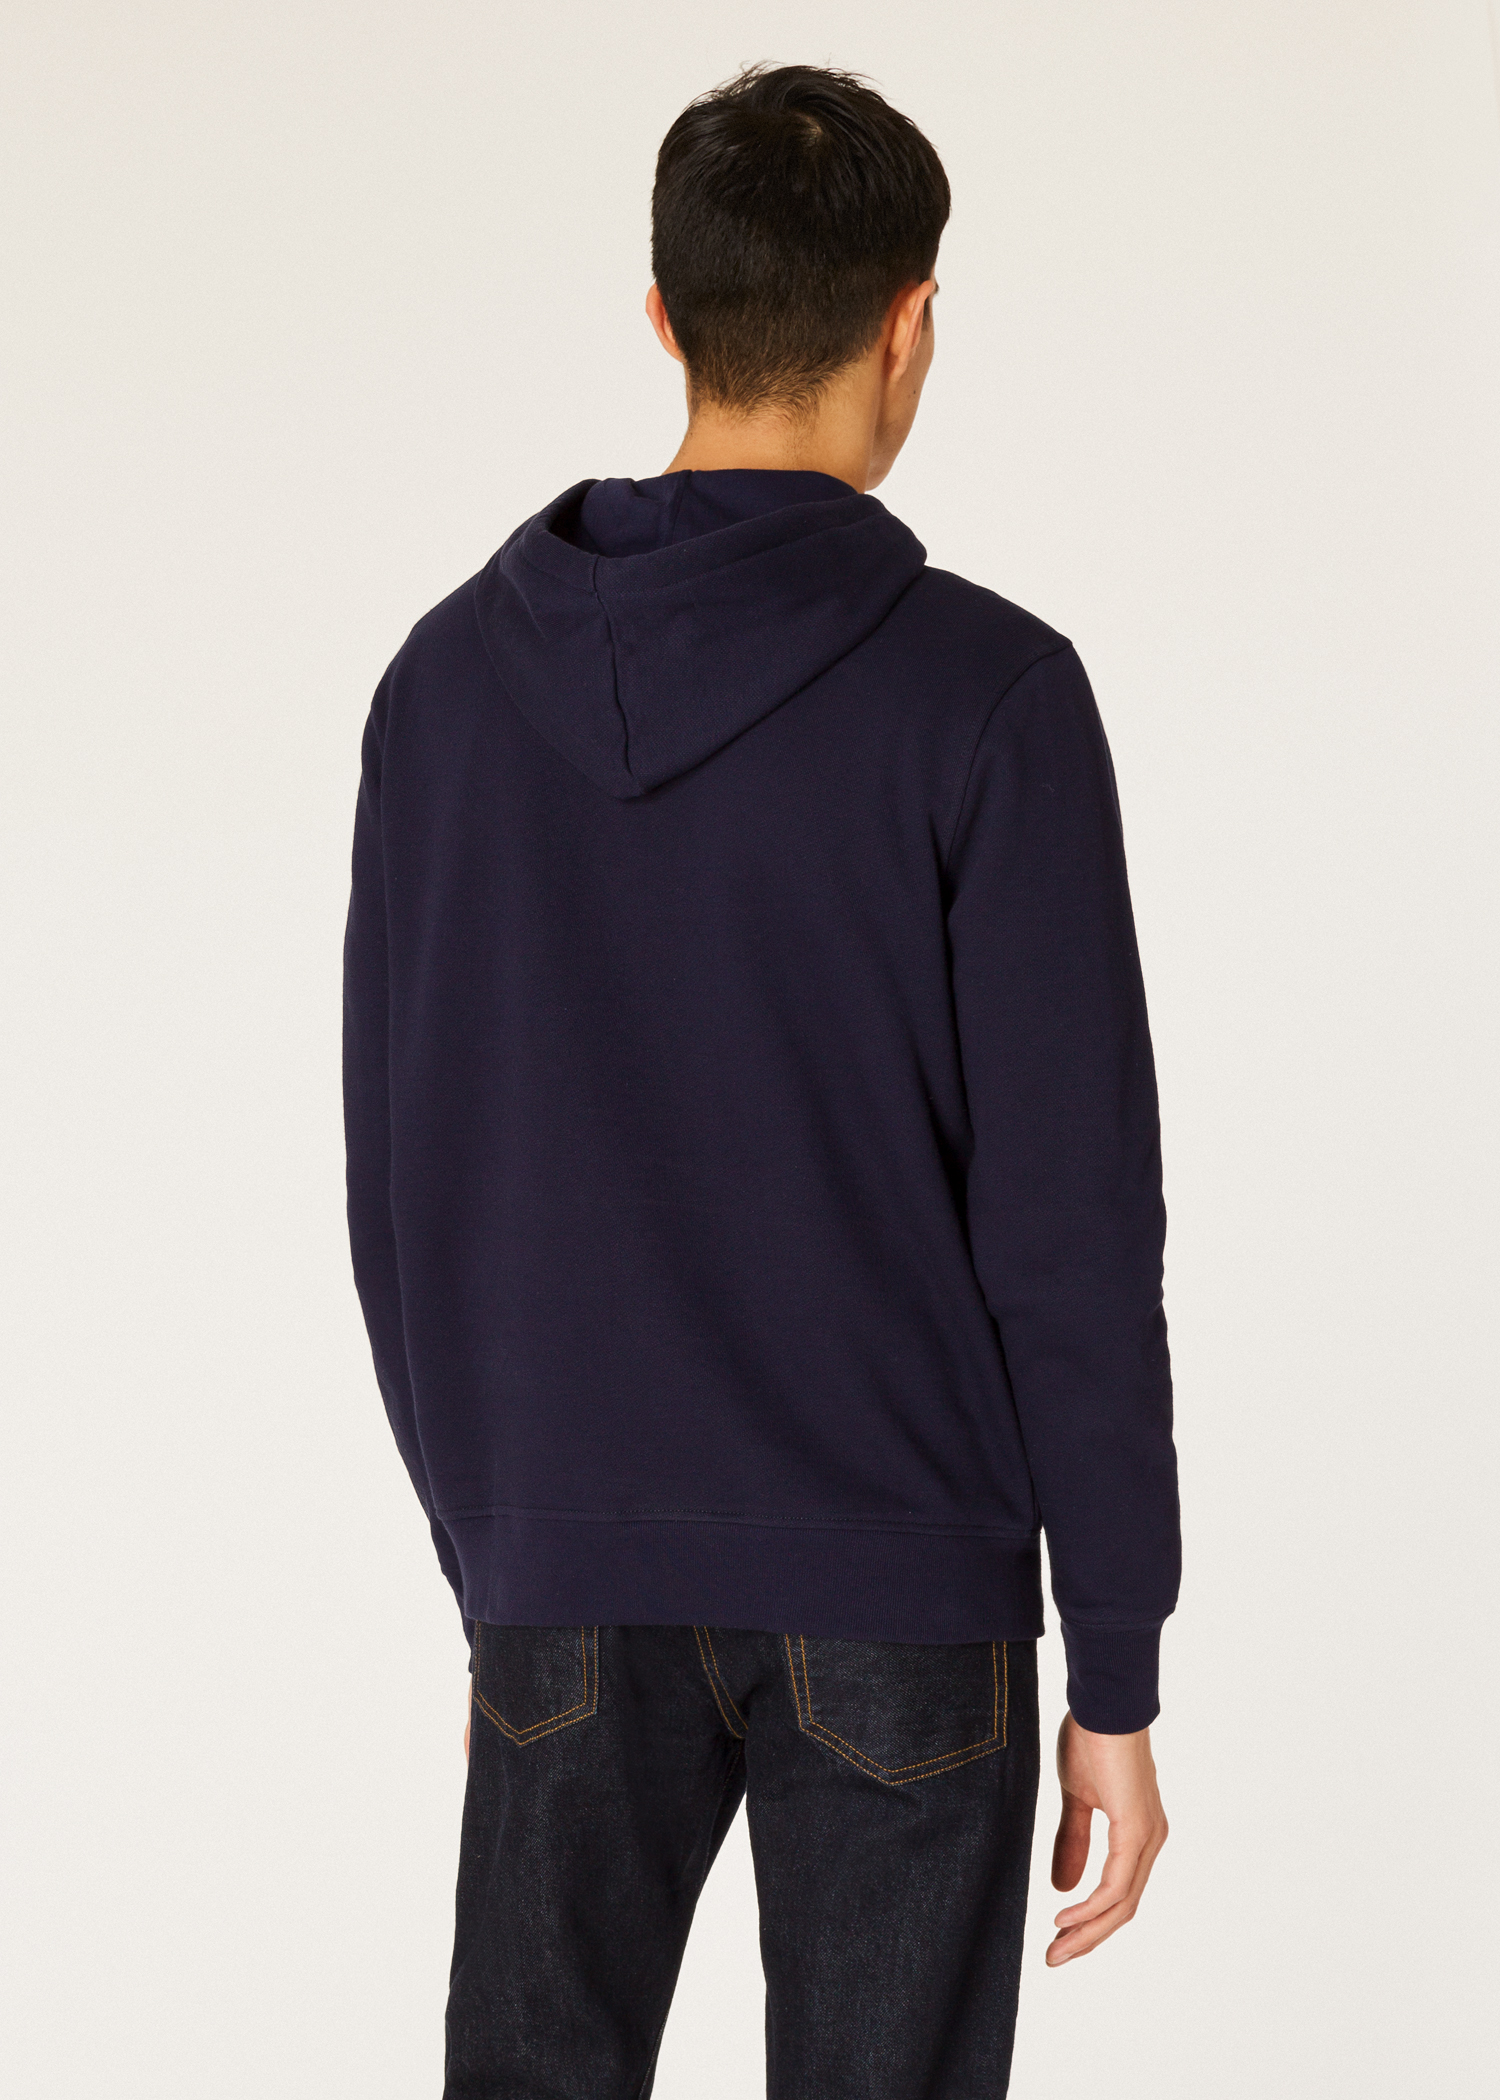 a62b81422ed420 Model back close up - Men's Navy Half-Zip Cotton Hoodie Paul Smith